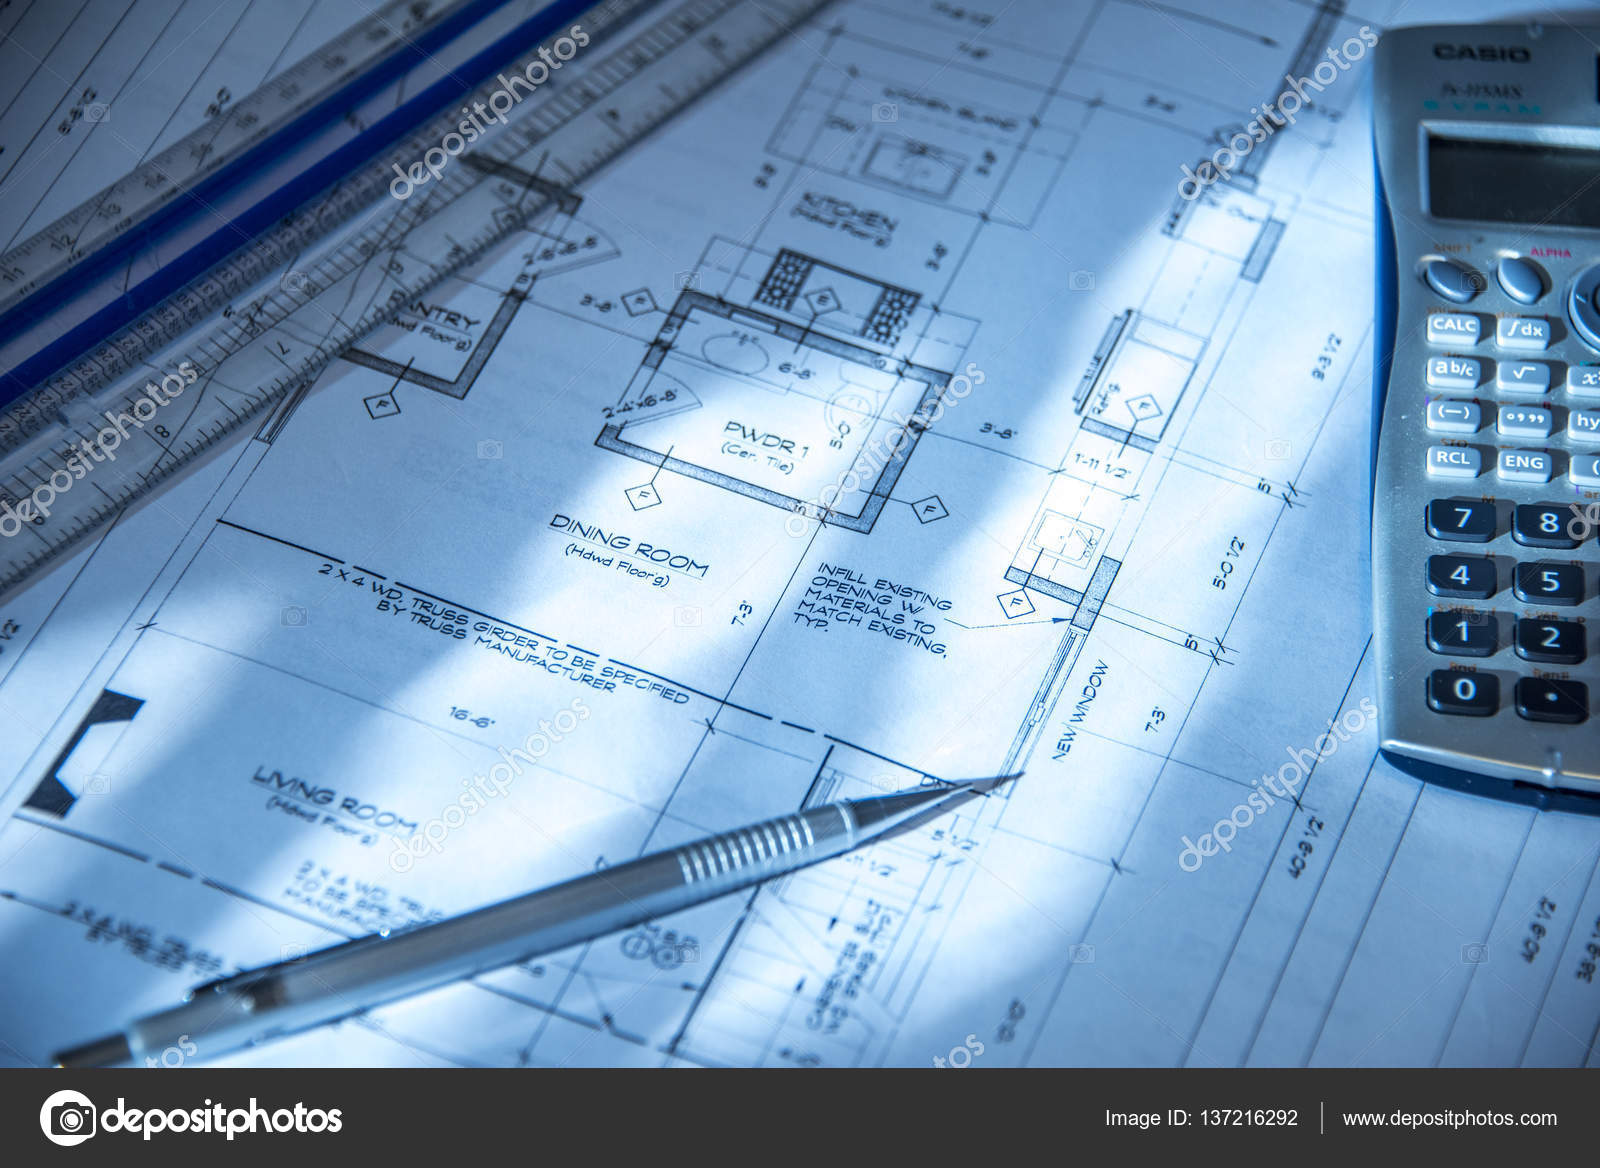 Architectural blueprints blueprint concepts topics construction architectural blueprints blueprint concepts topics construction industry document ink photo by studiodin malvernweather Images